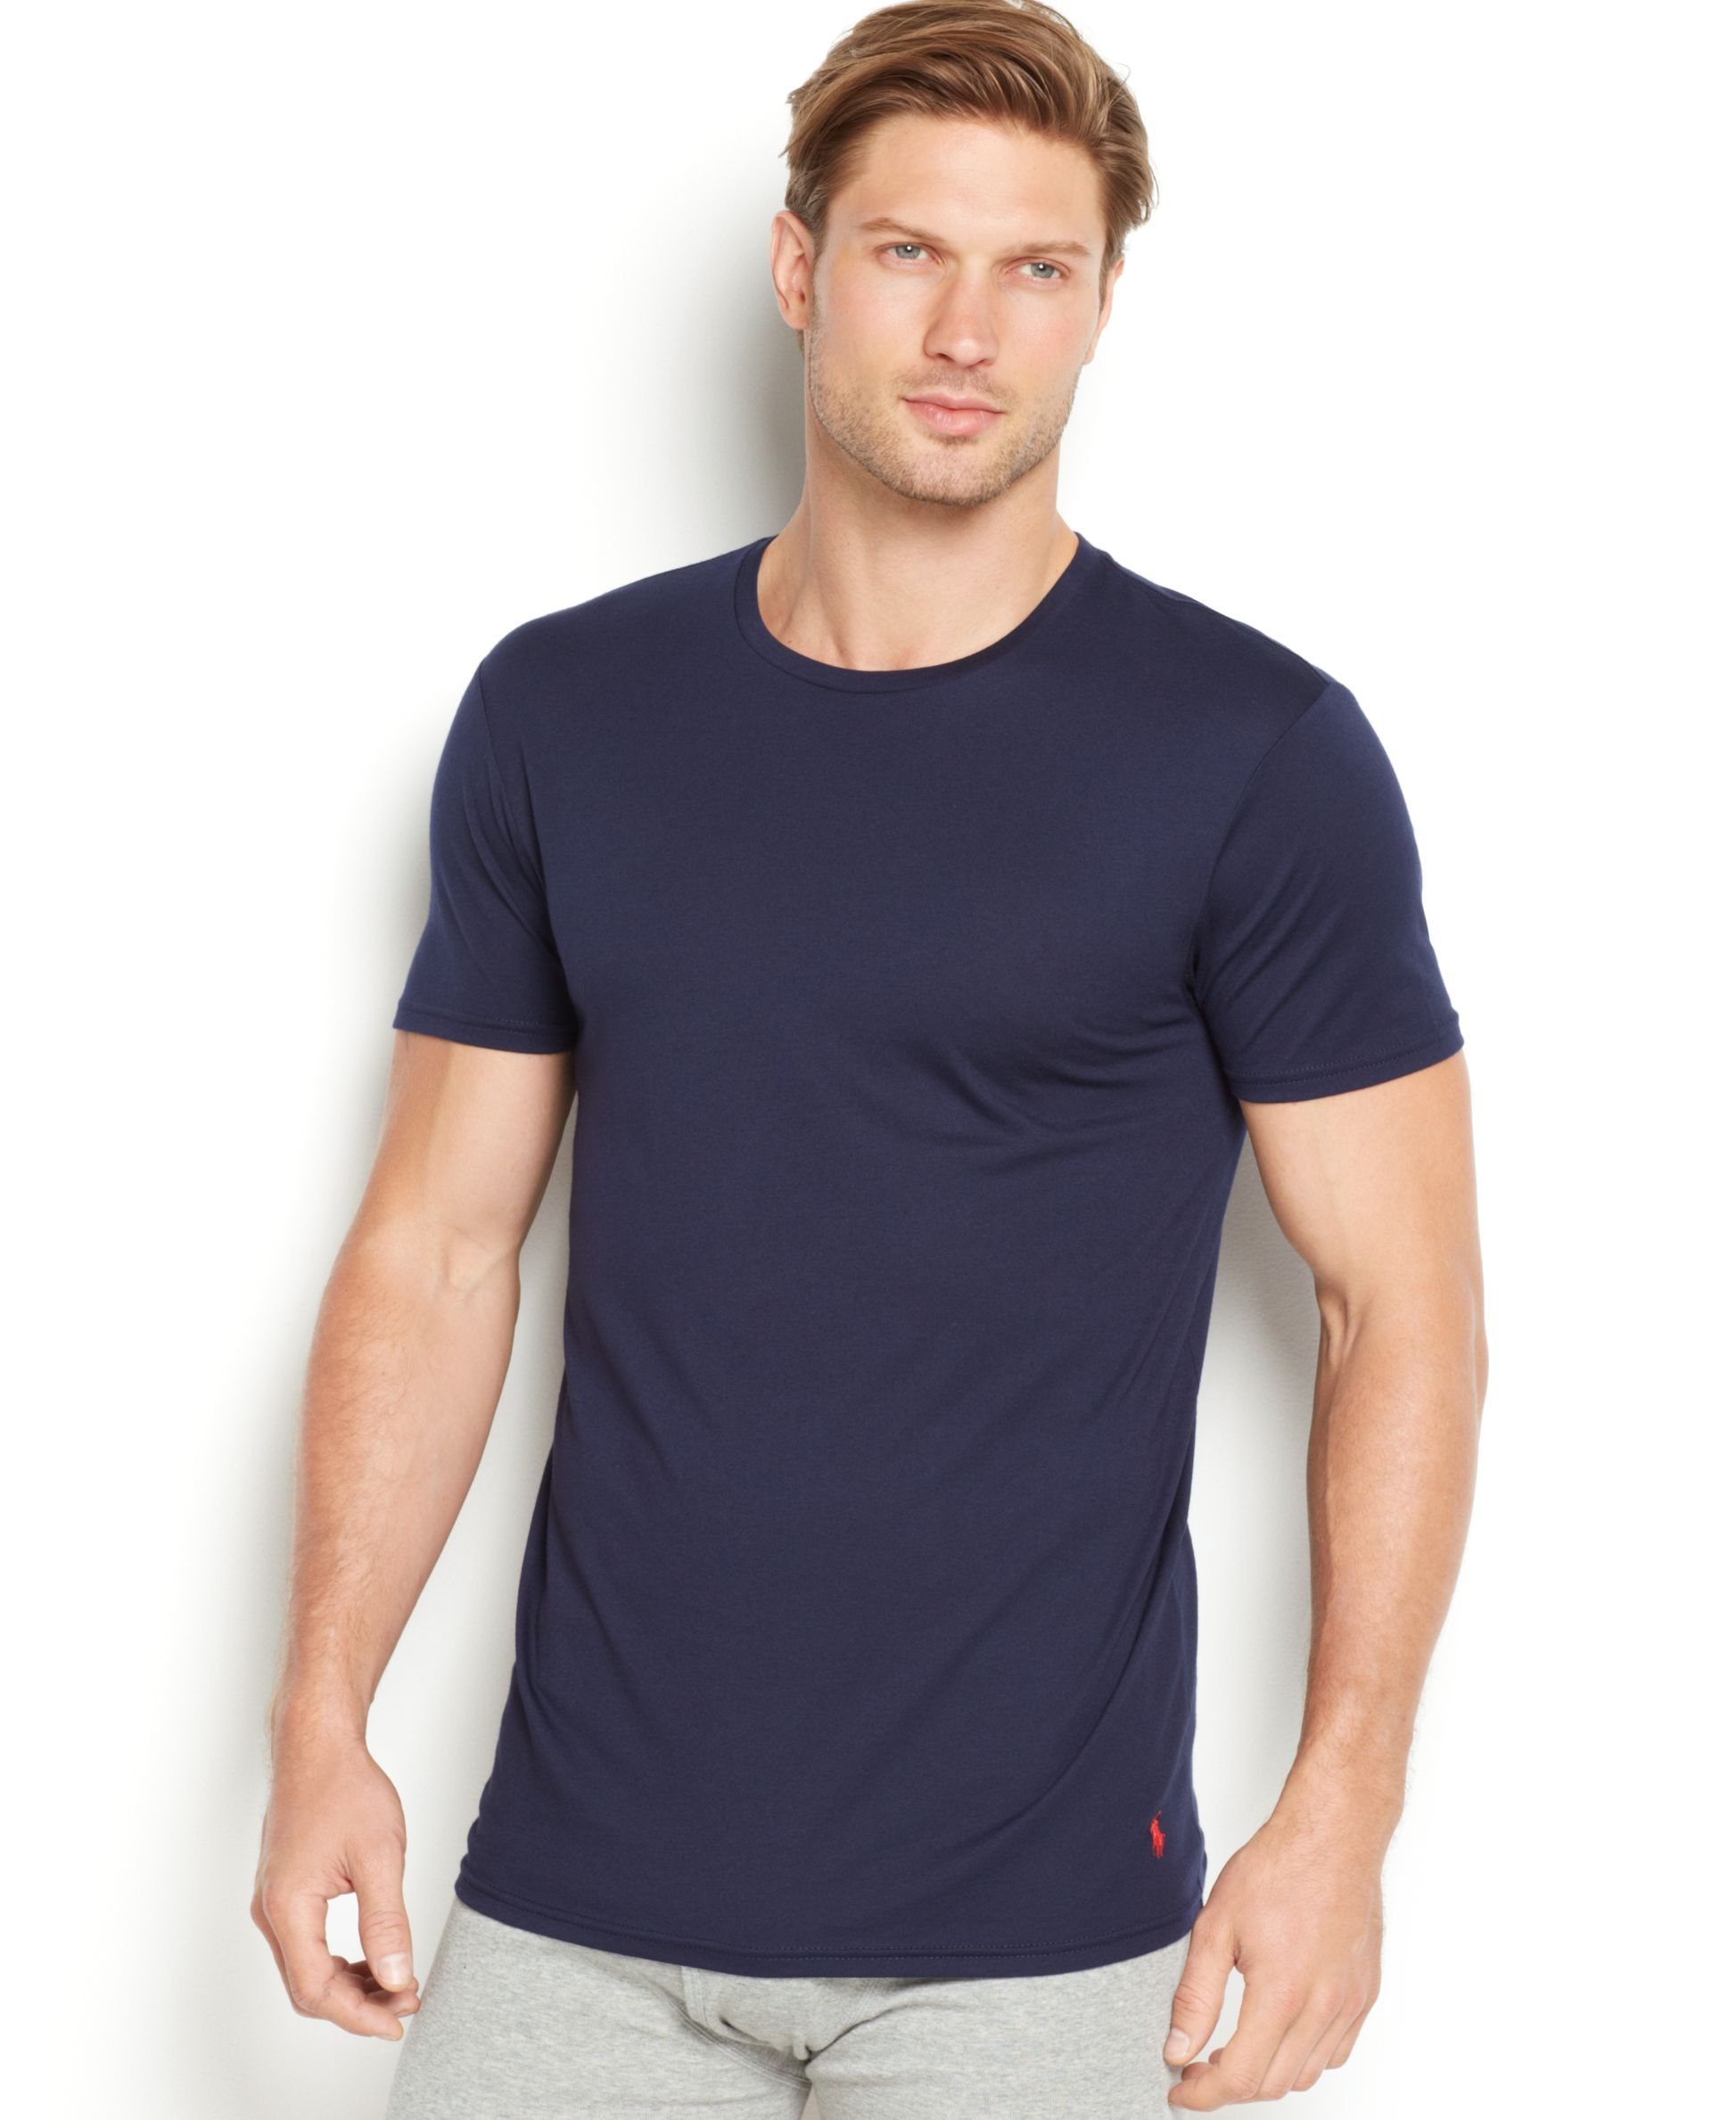 3c8652b81df67 Polo Ralph Lauren Men s Supreme Comfort Crew-Neck T-Shirt 2-Pack ...